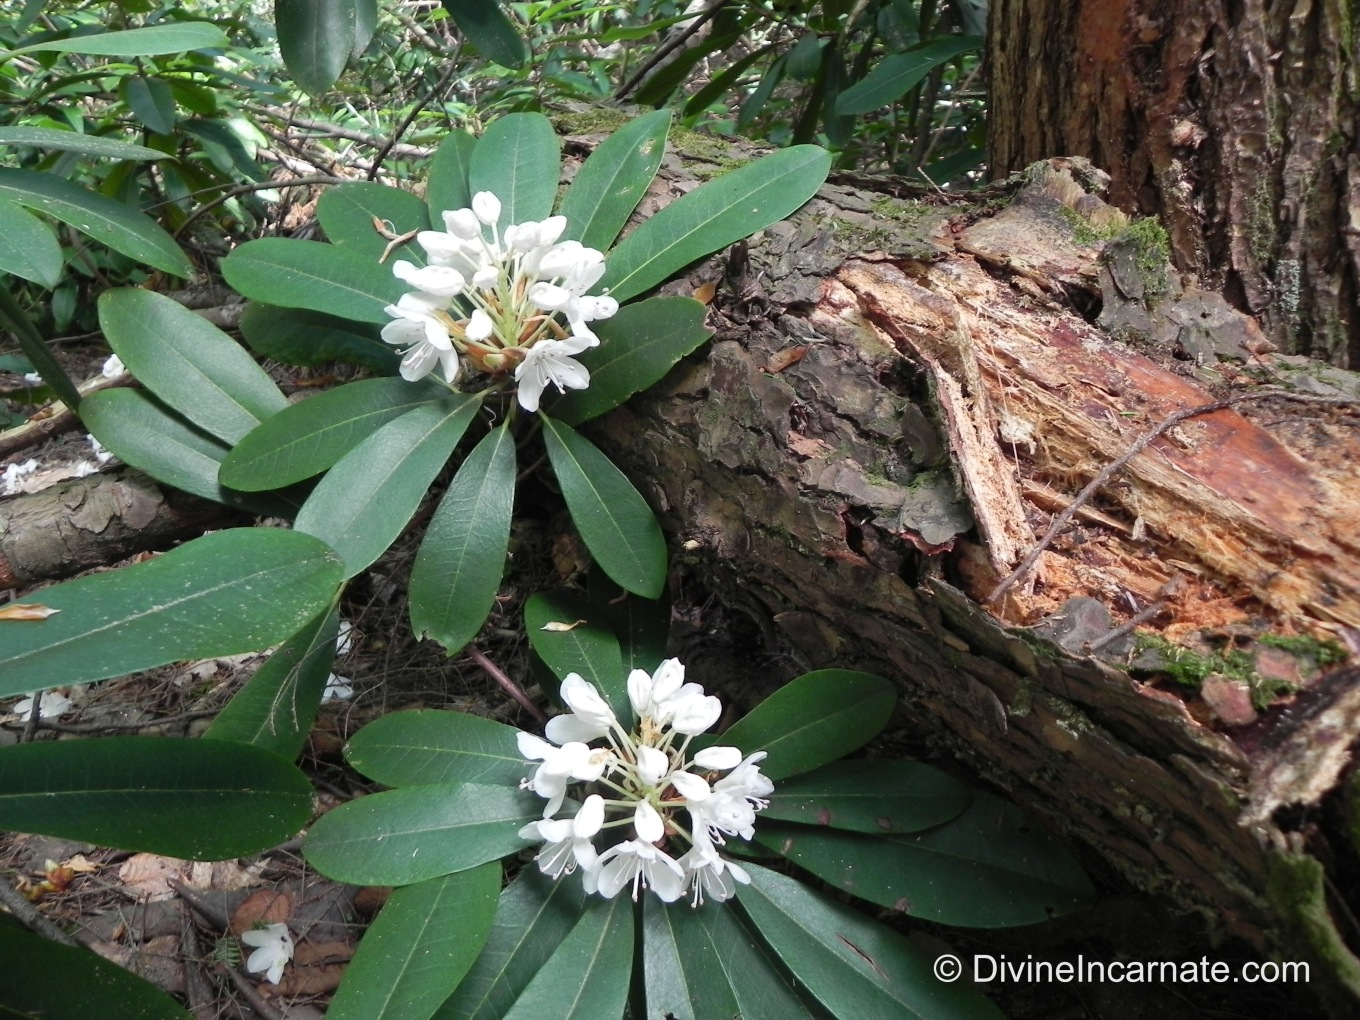 flowers, forests, rotting log, rhododendron